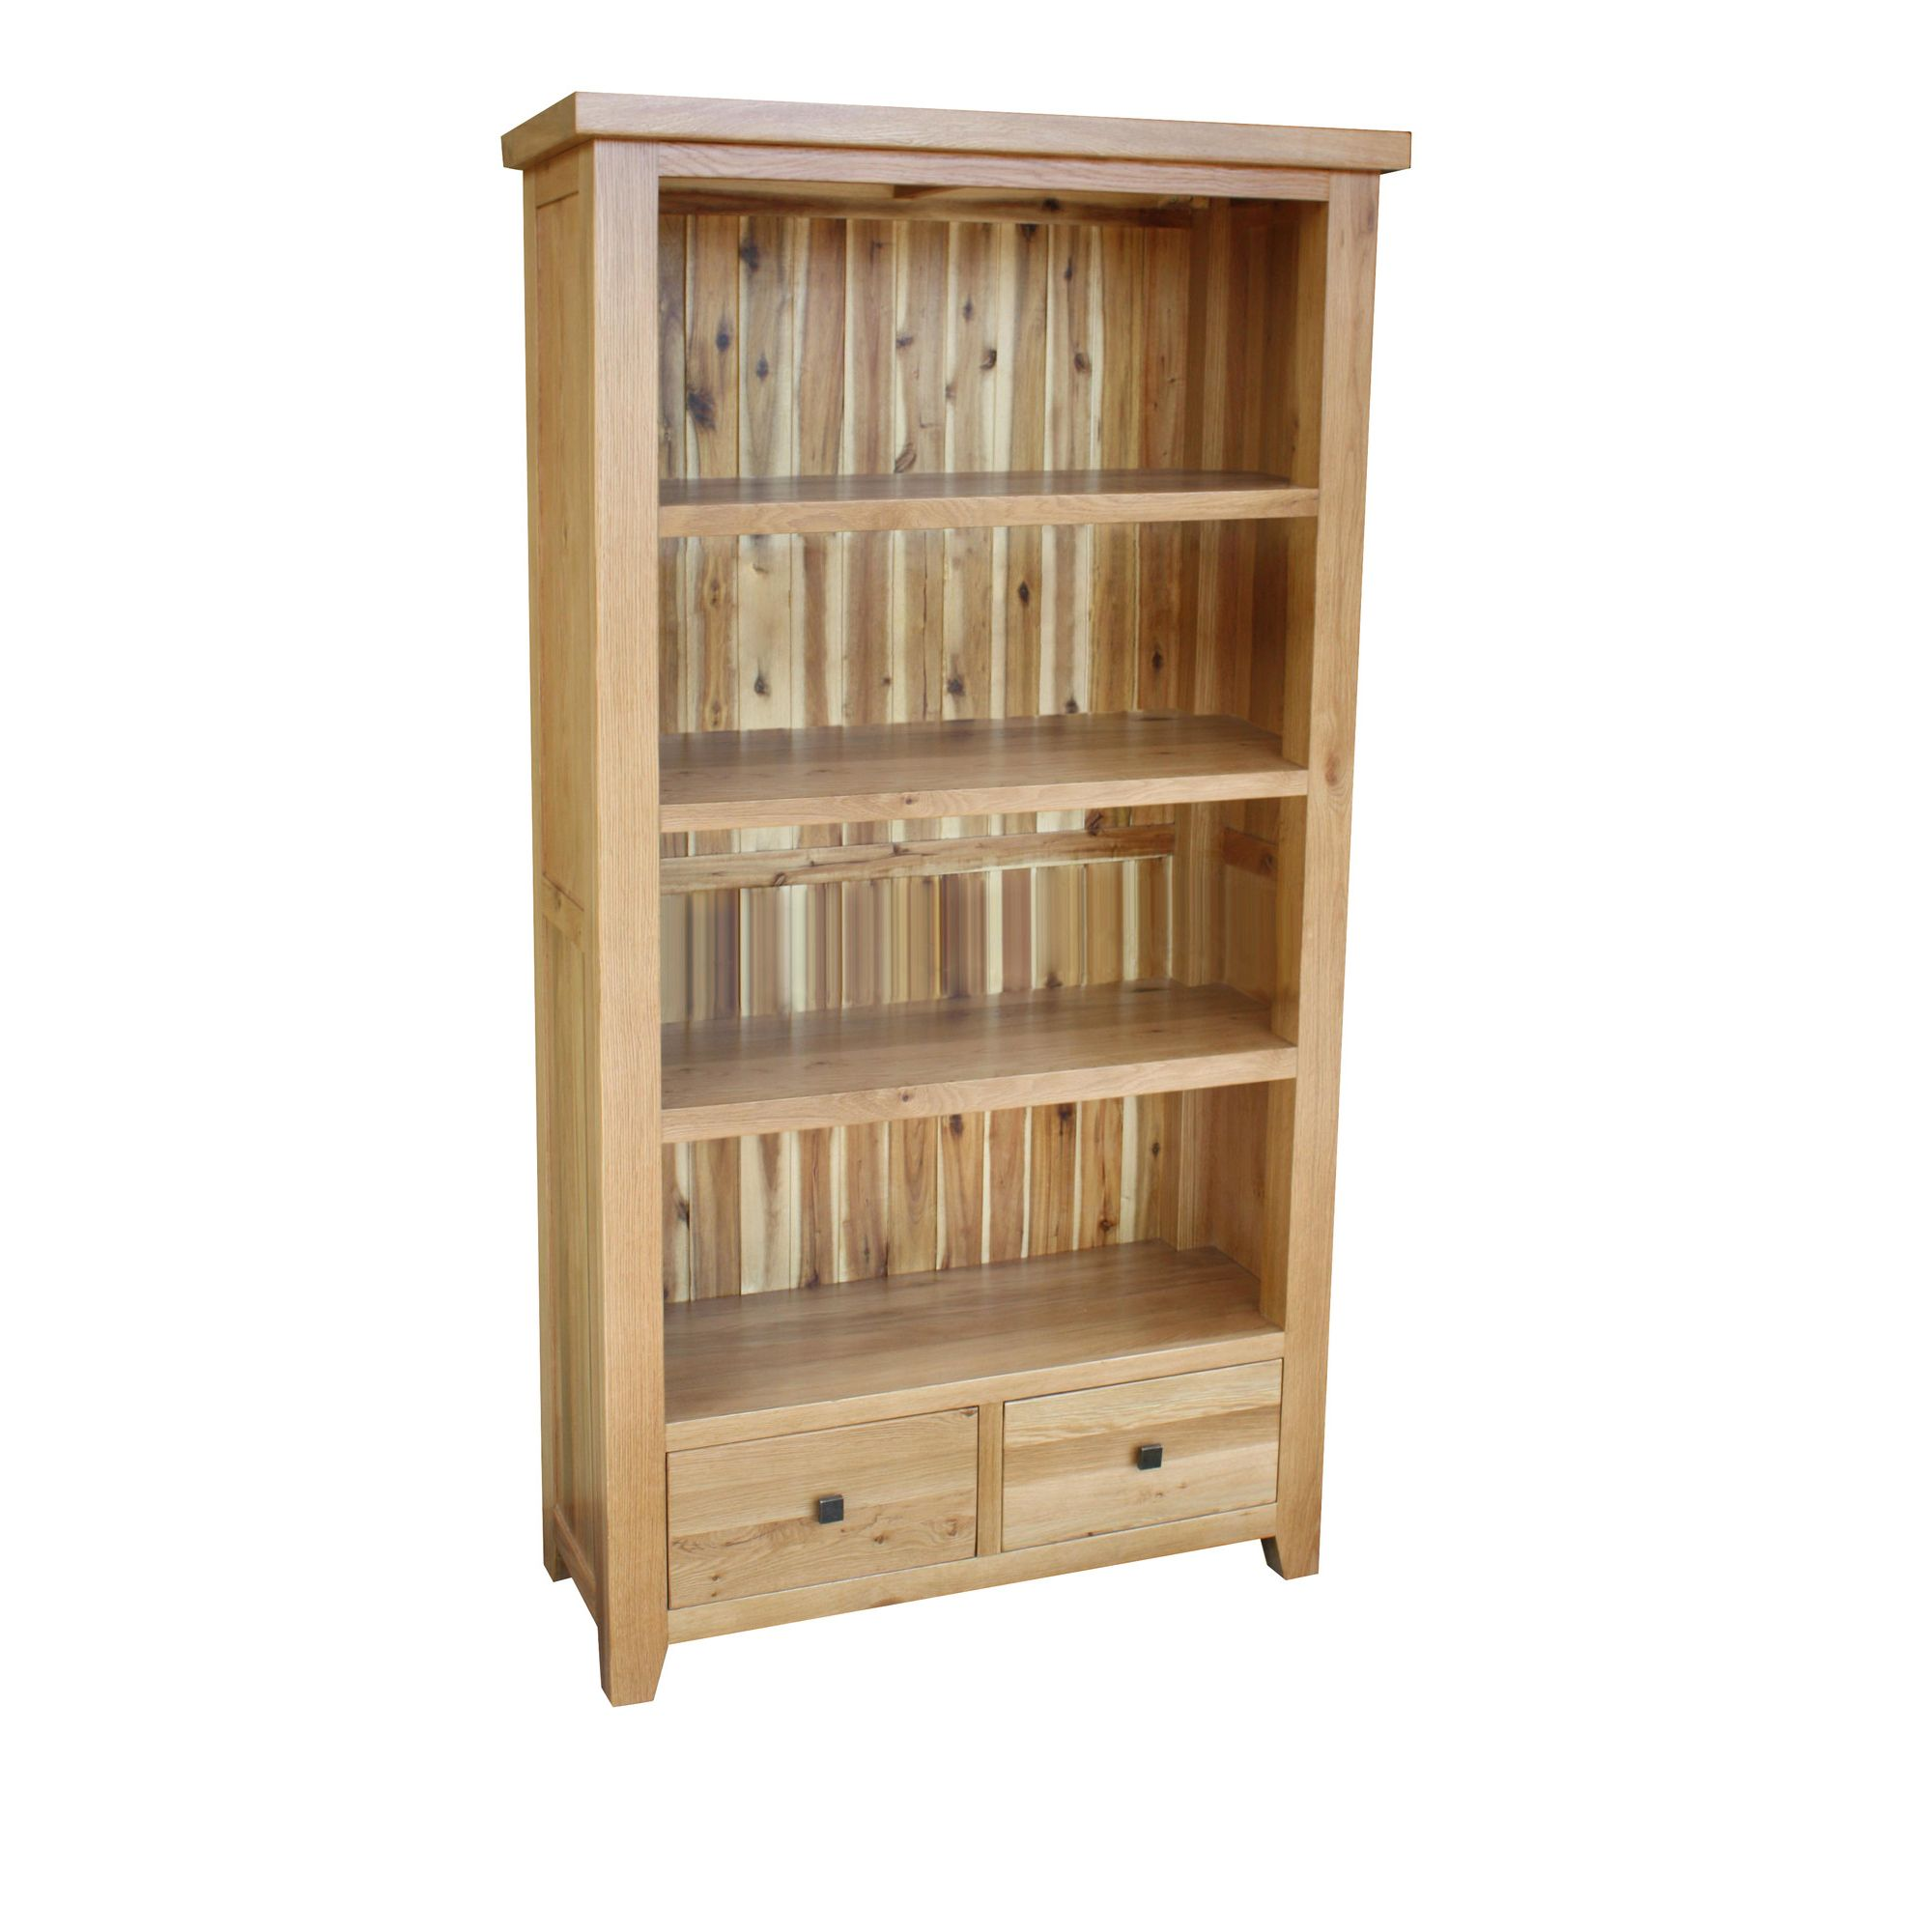 Thorndon Taunton Bookcase in Rustic at Tesco Direct